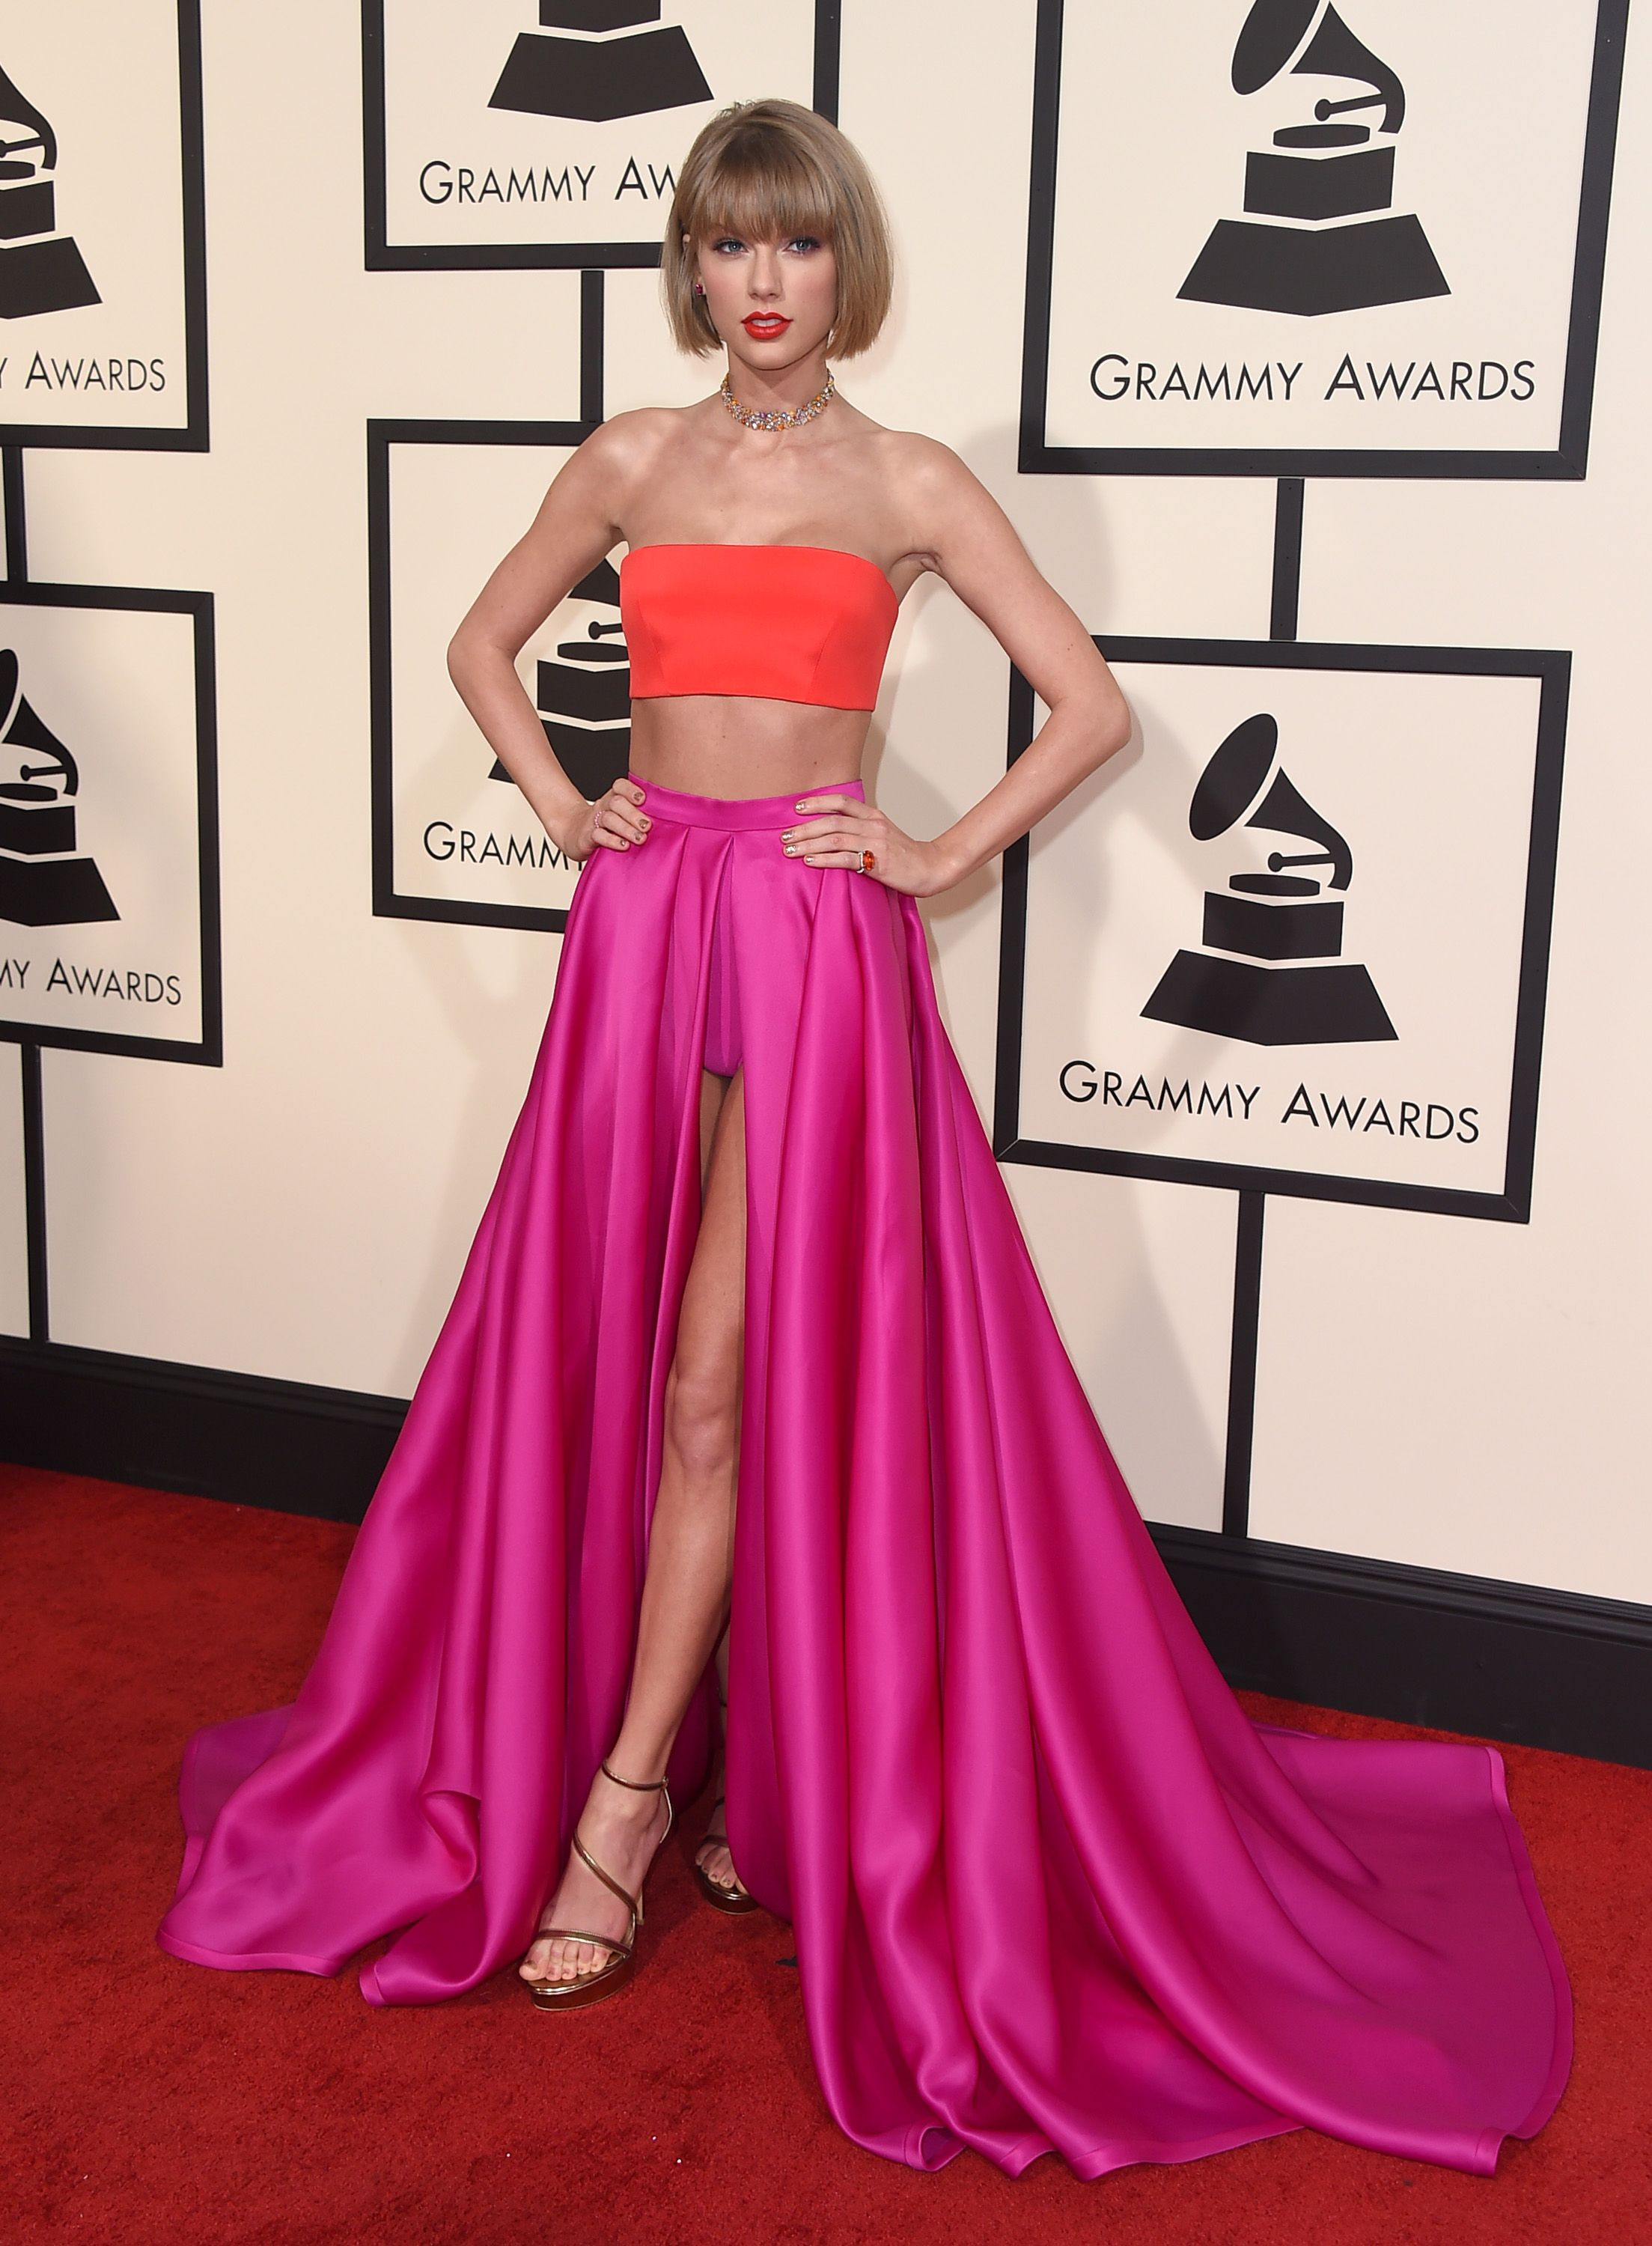 The 2016 Grammys Red Carpet: Taylor Swift in an Atelier Versace ...